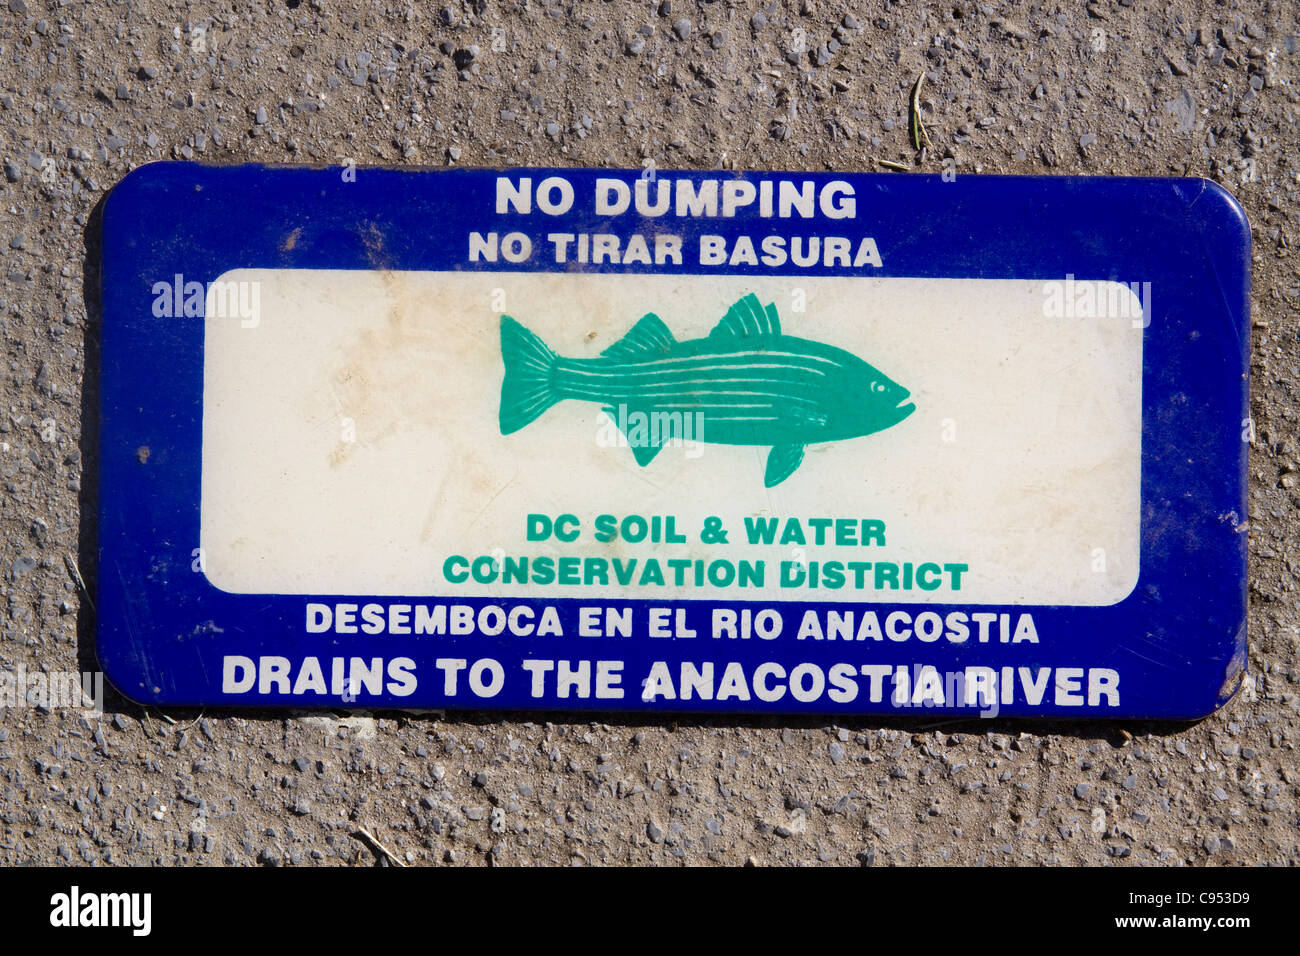 District of Columbia Soil Water Conservation Dist No Dumping Drains to Anacostia River sign on top of a storm drainage - Stock Image